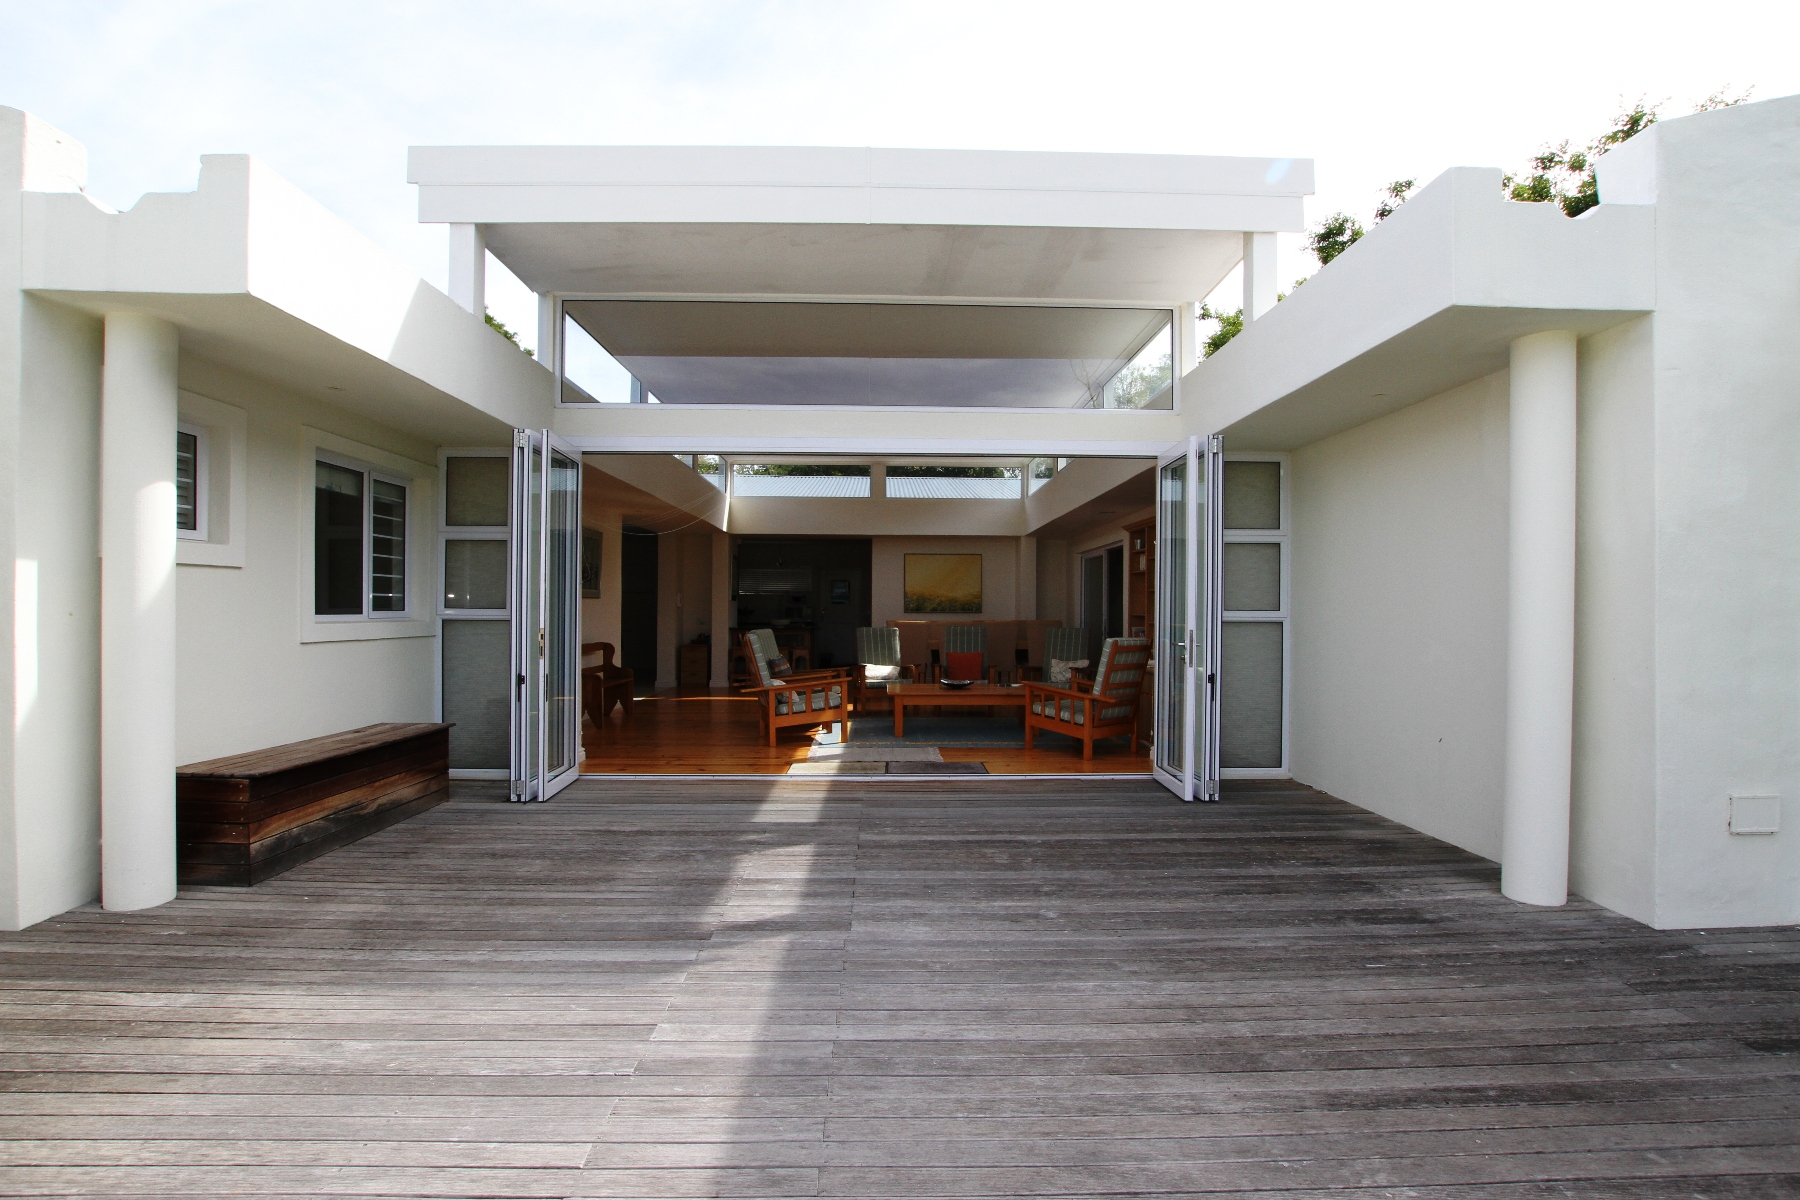 Single Family Home for Sale at Poortjies family Home Plettenberg Bay, Western Cape 6600 South Africa